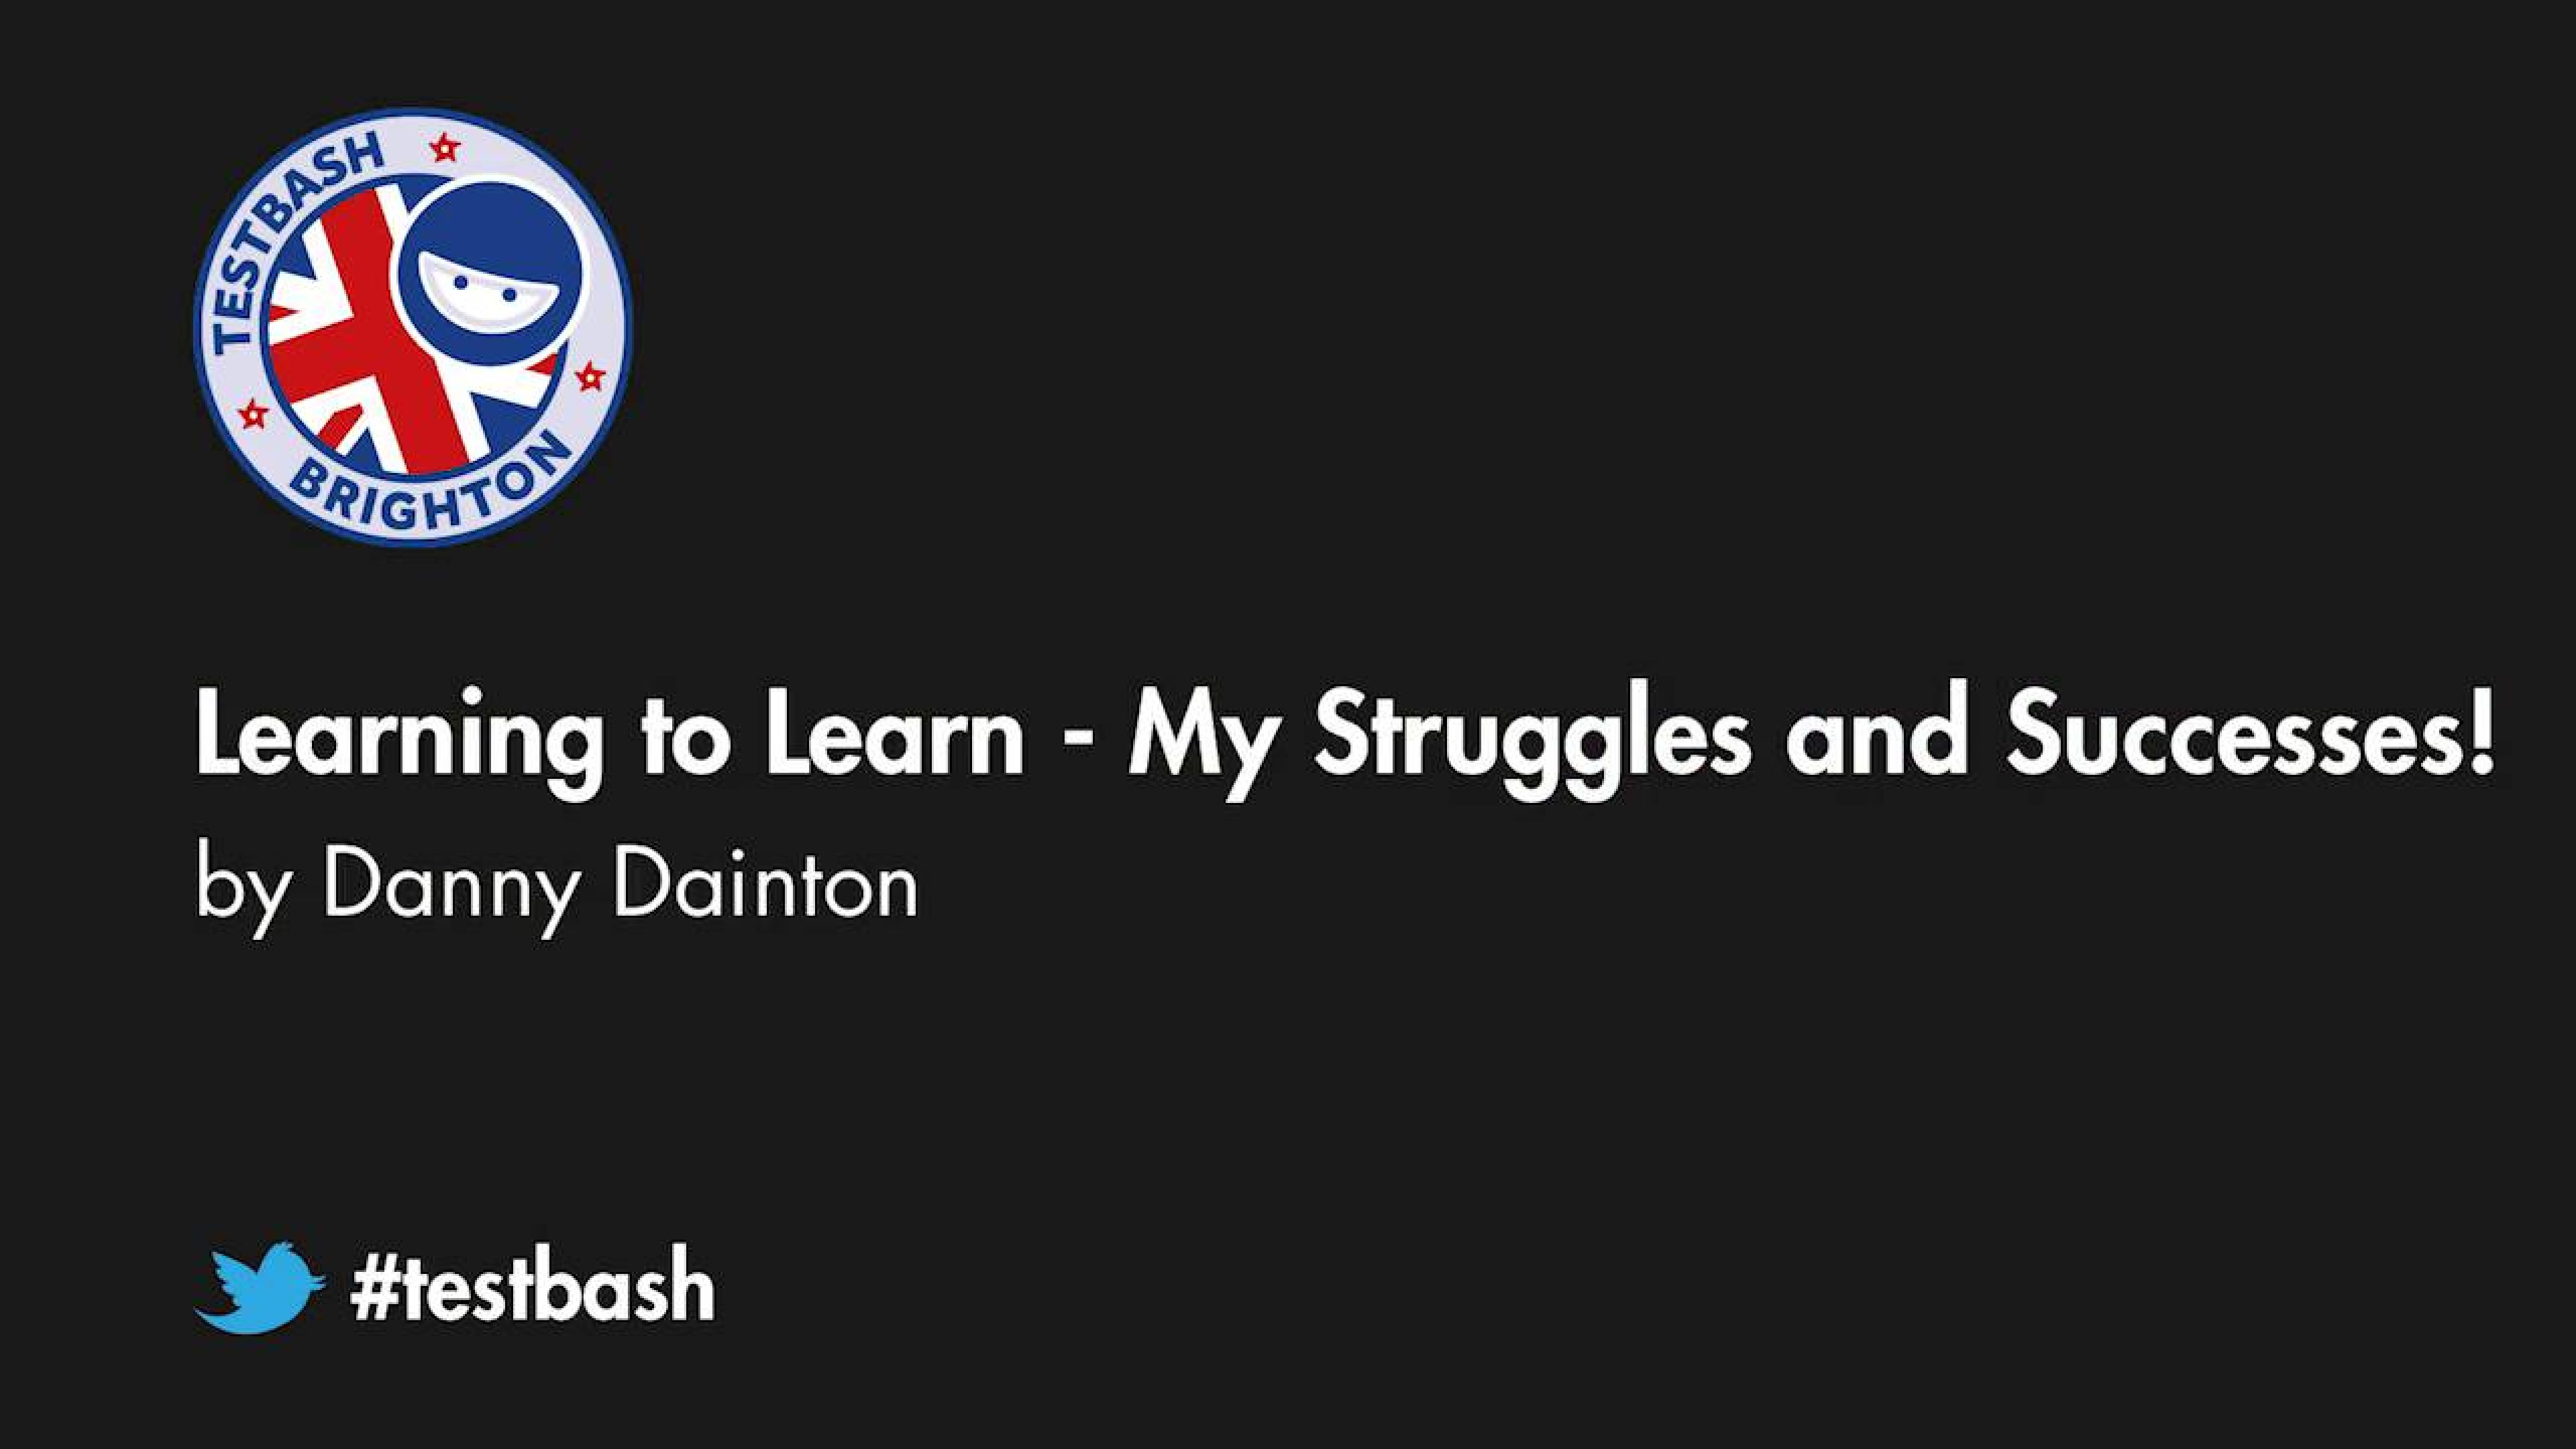 Learning To Learn - My Struggles And Successes! - Danny Dainton